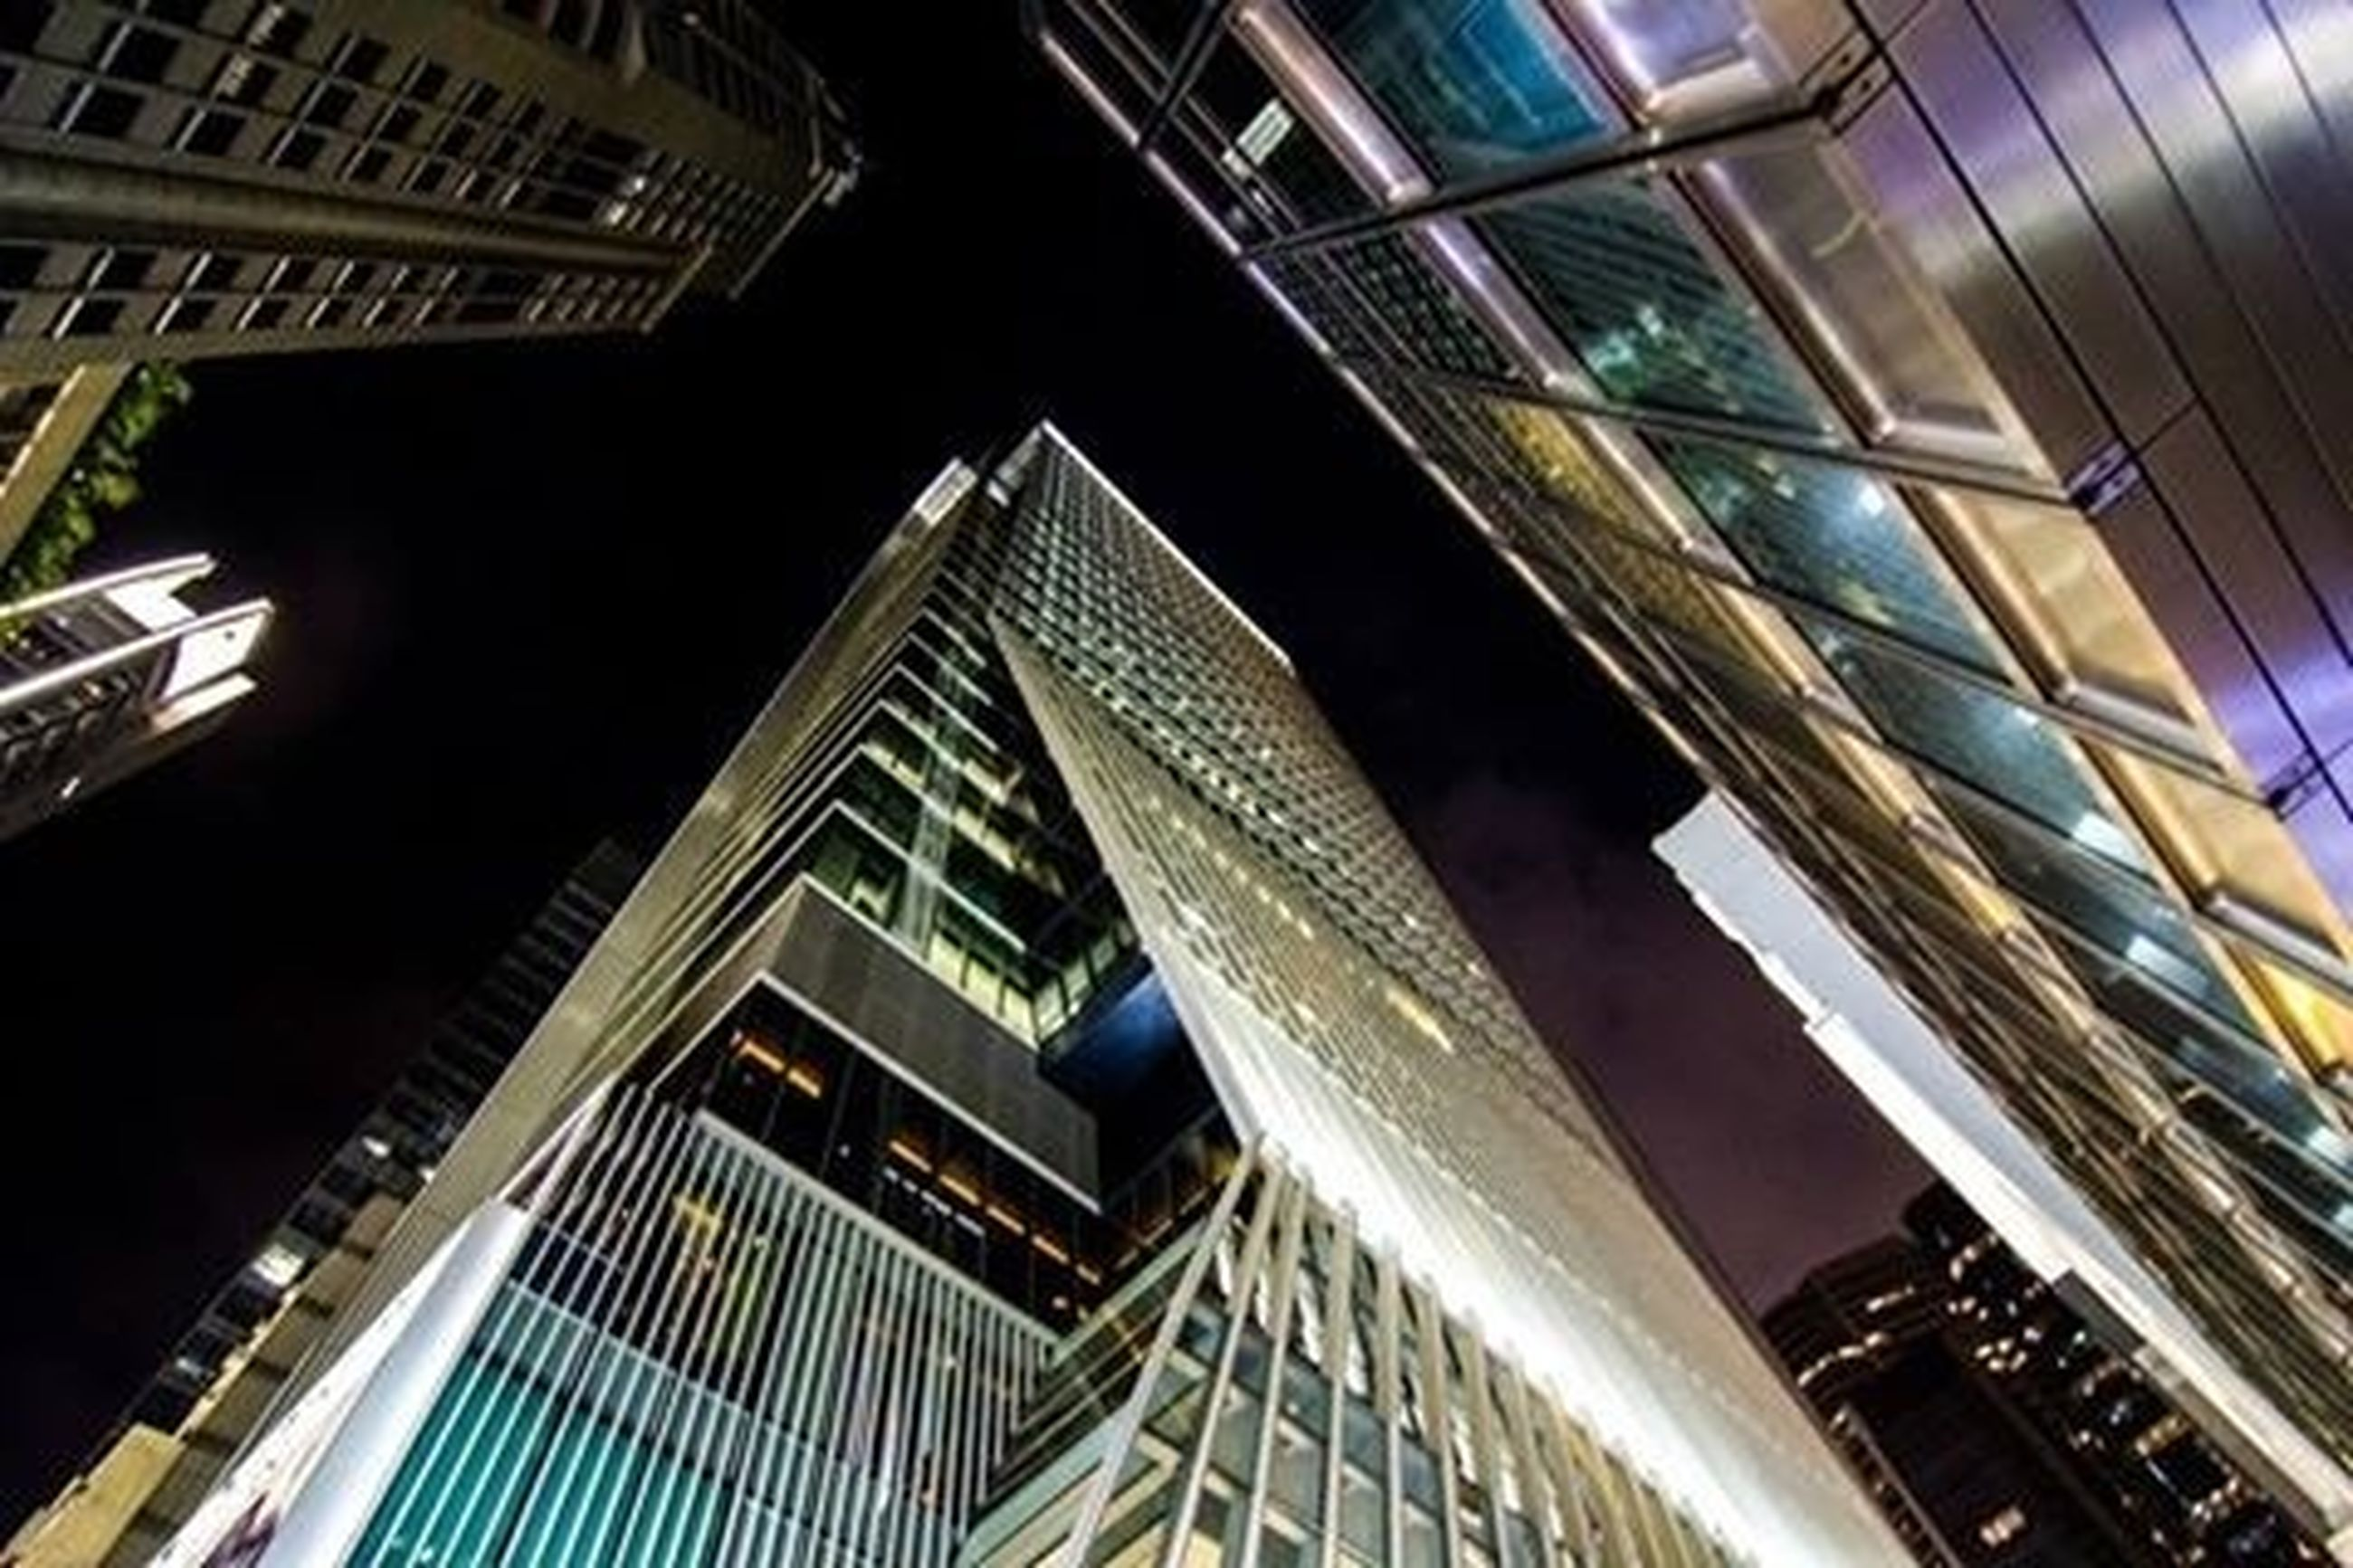 architecture, low angle view, built structure, building exterior, building, illuminated, night, window, modern, city, residential building, office building, residential structure, glass - material, no people, skyscraper, outdoors, reflection, tall - high